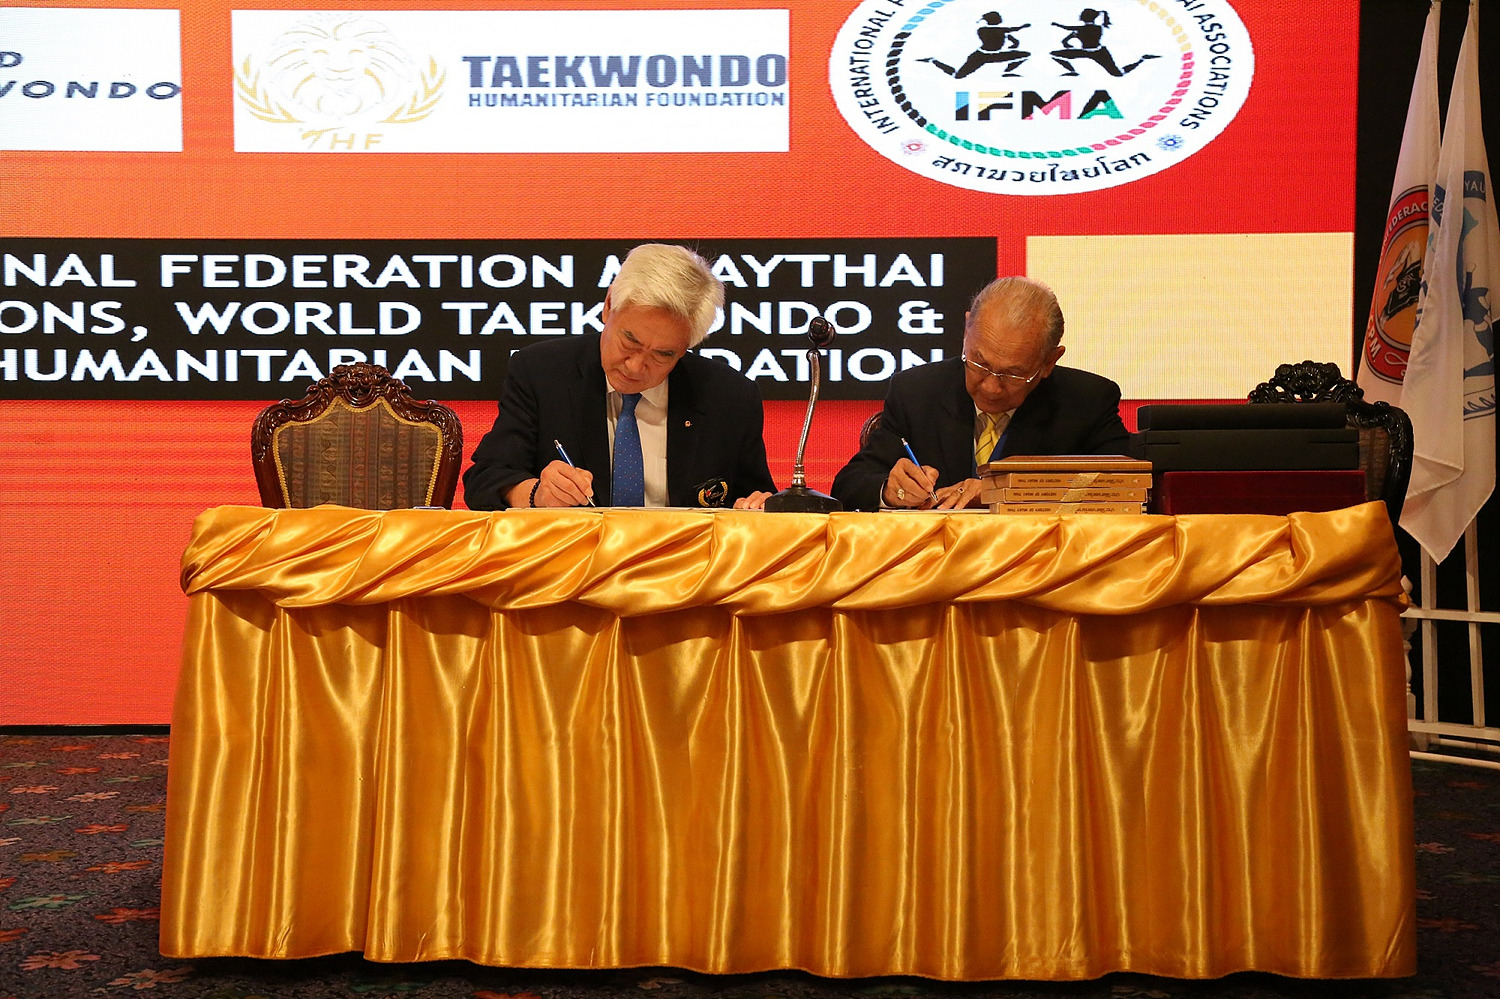 20190727-WT and IFMA signed MOU.2